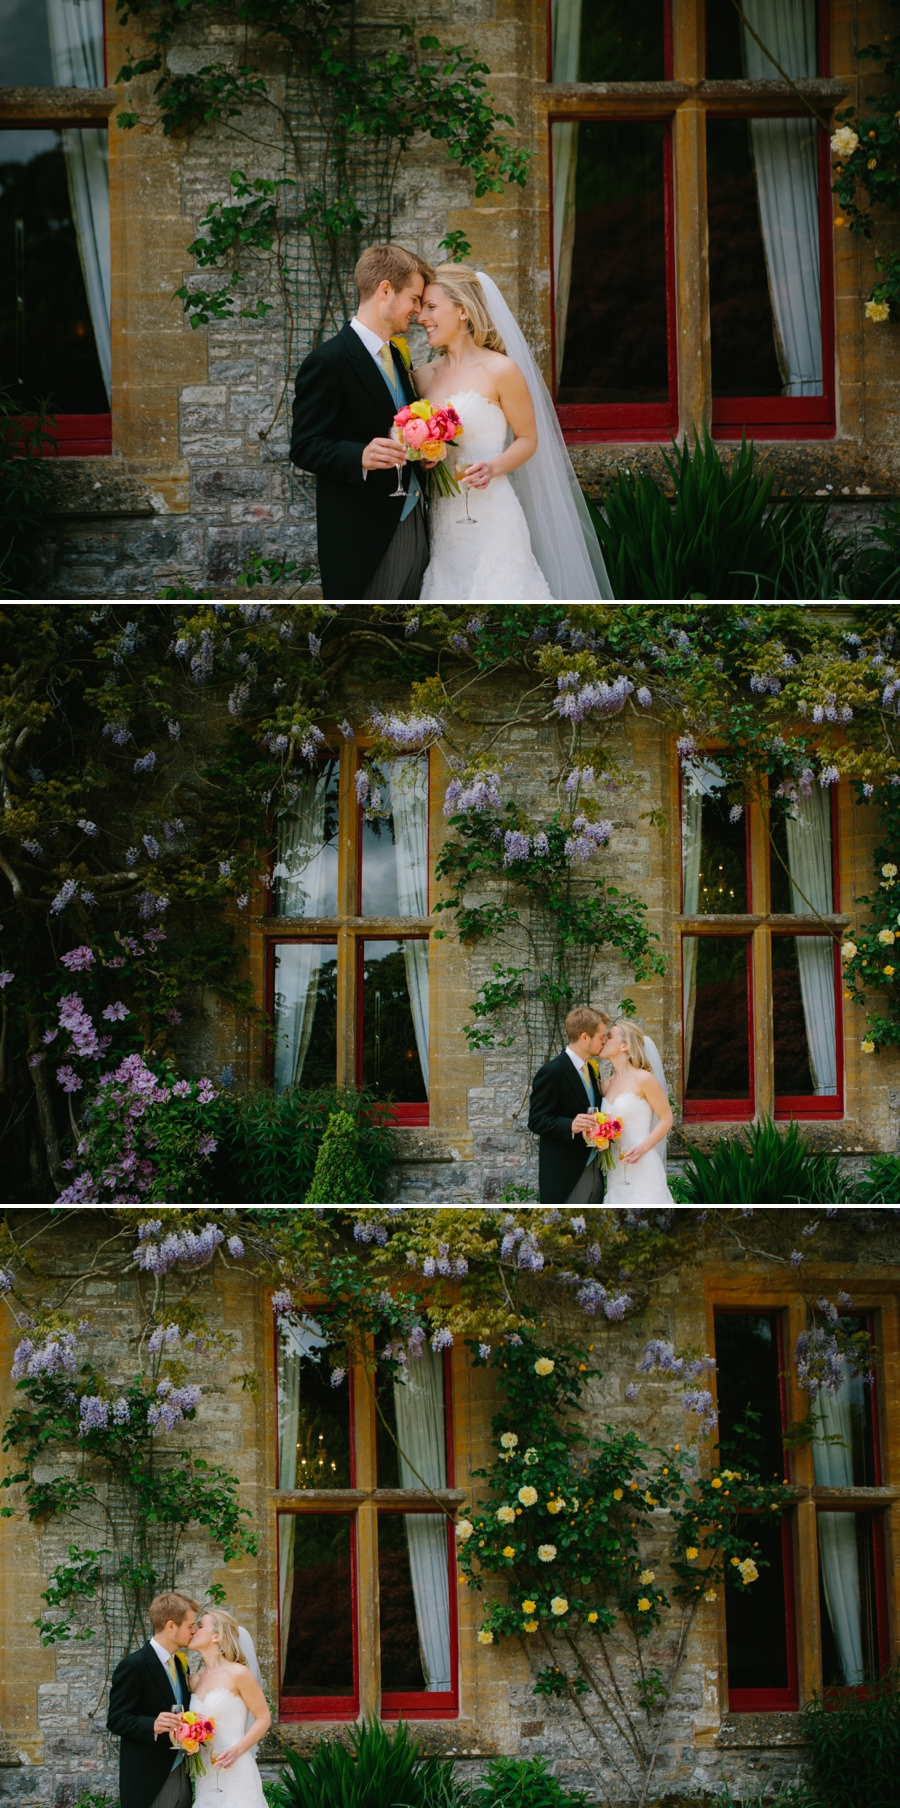 Somerset Wedding Photographer Huntsham Court Wedding Julie and Chris_0050.jpg